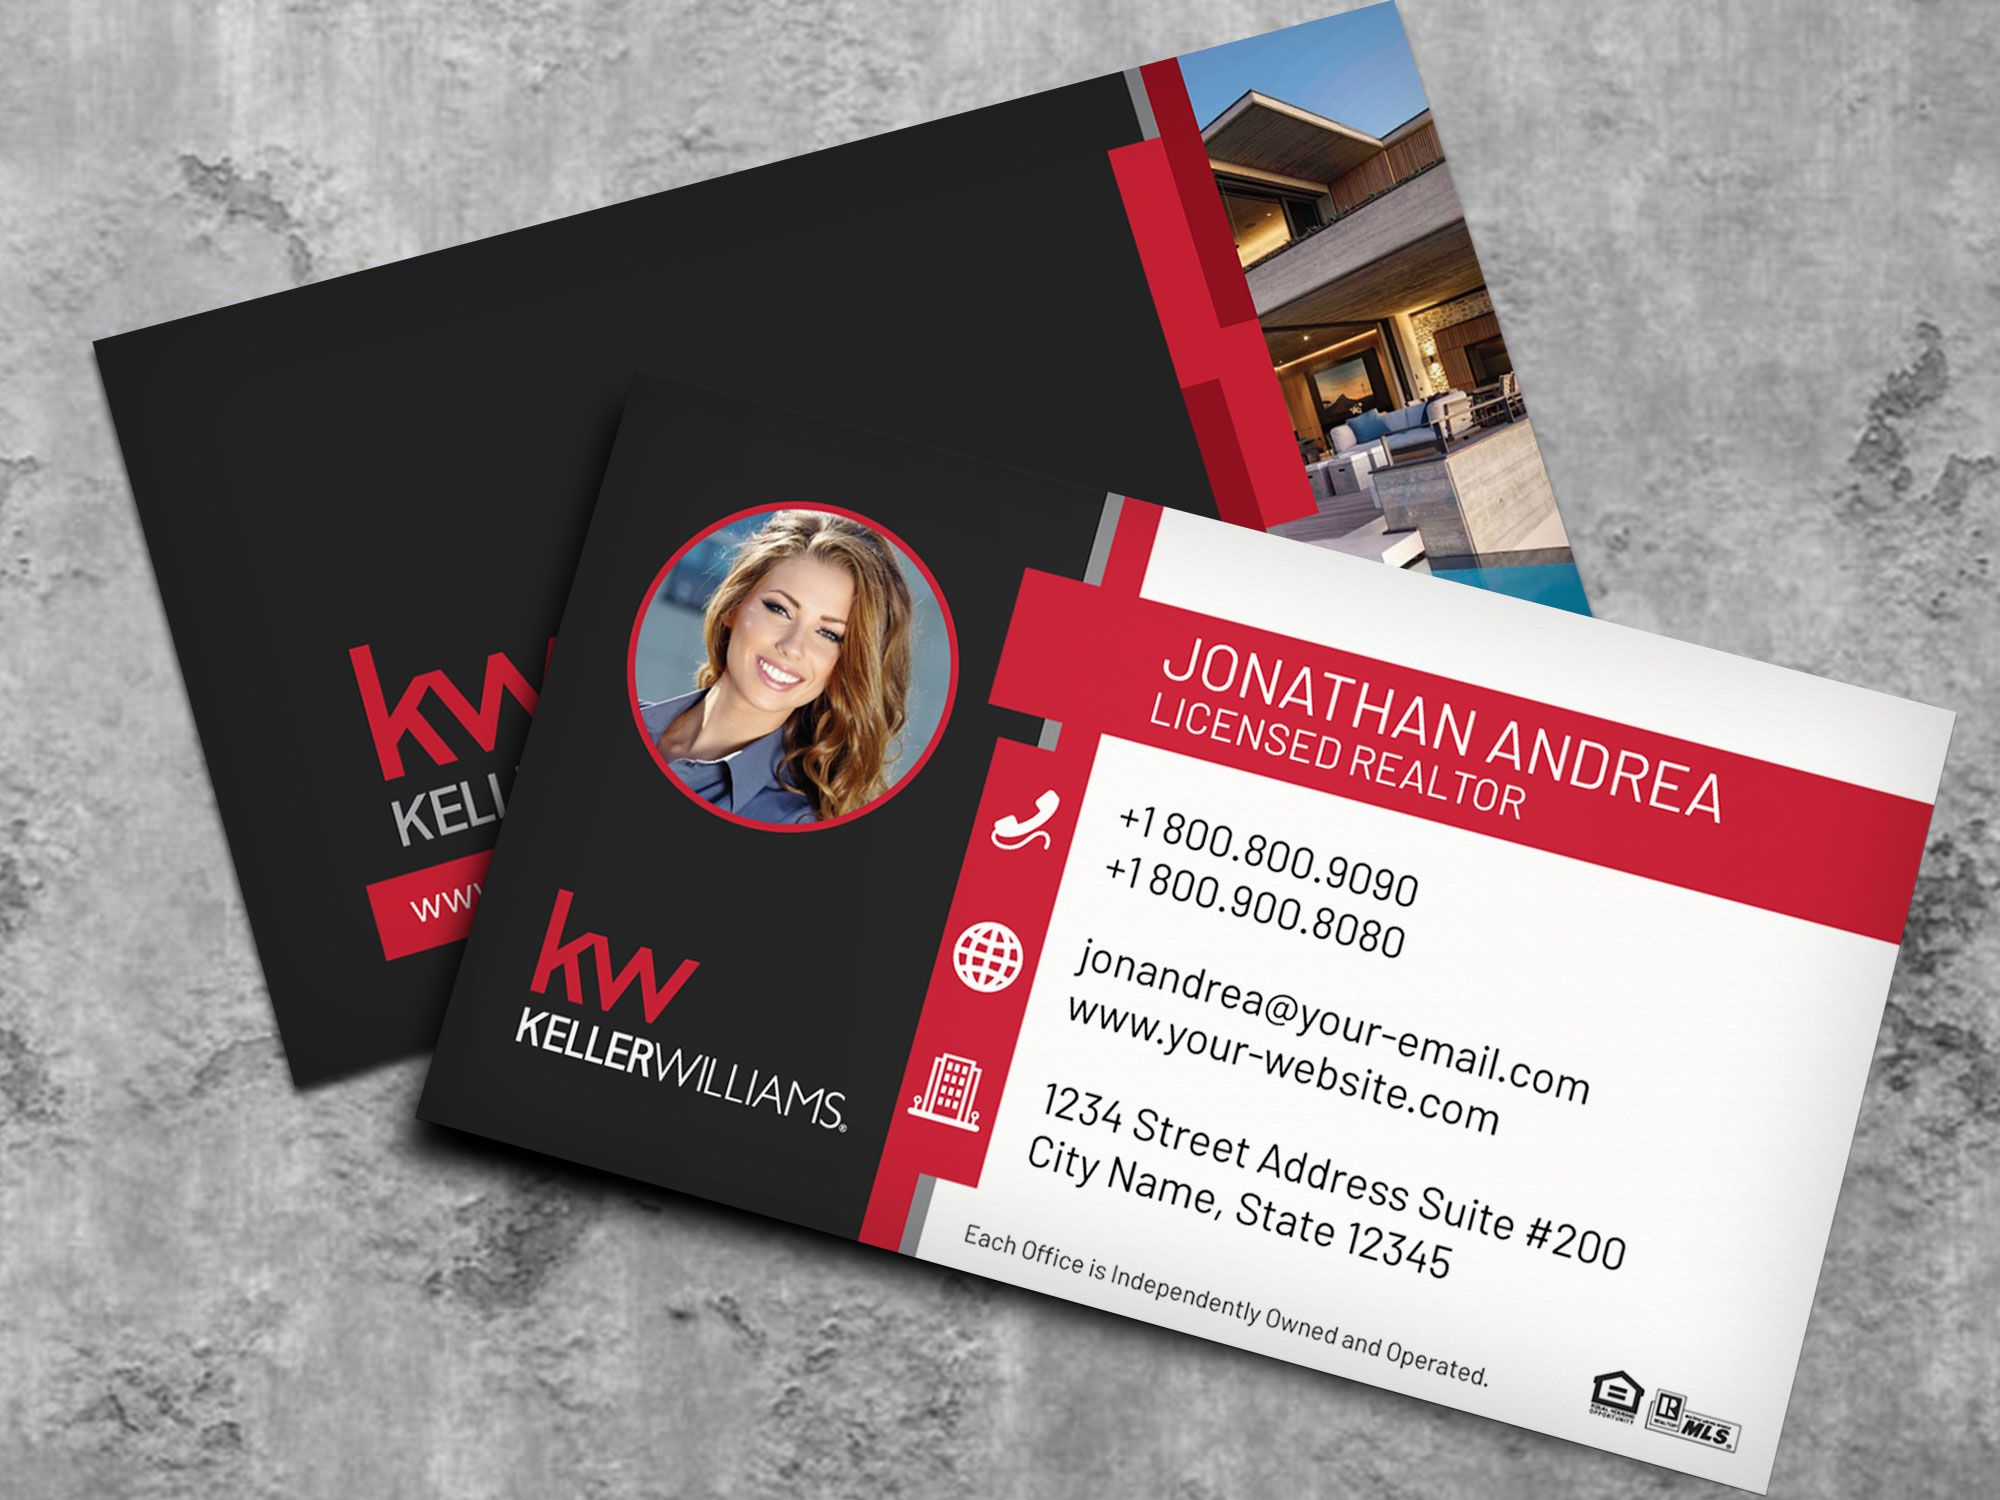 Keller Williams Business Card Template Bc19702kw Nusacreative With Regard Keller Williams Business Cards Realtor Business Cards Free Business Card Templates